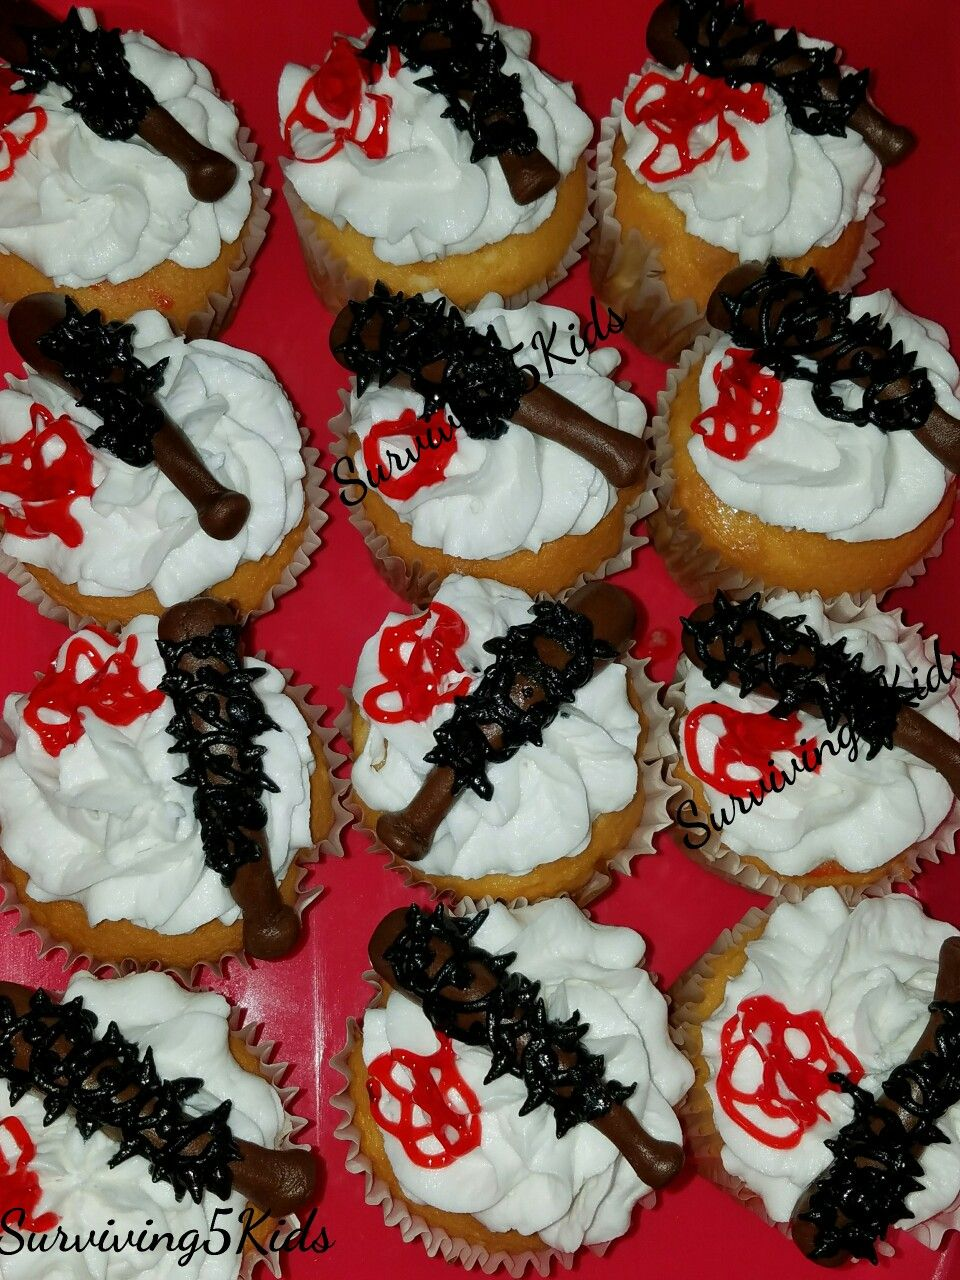 Negan's Sluggers Cupcakes By Say It With Cake Bakery in New Bern, NC